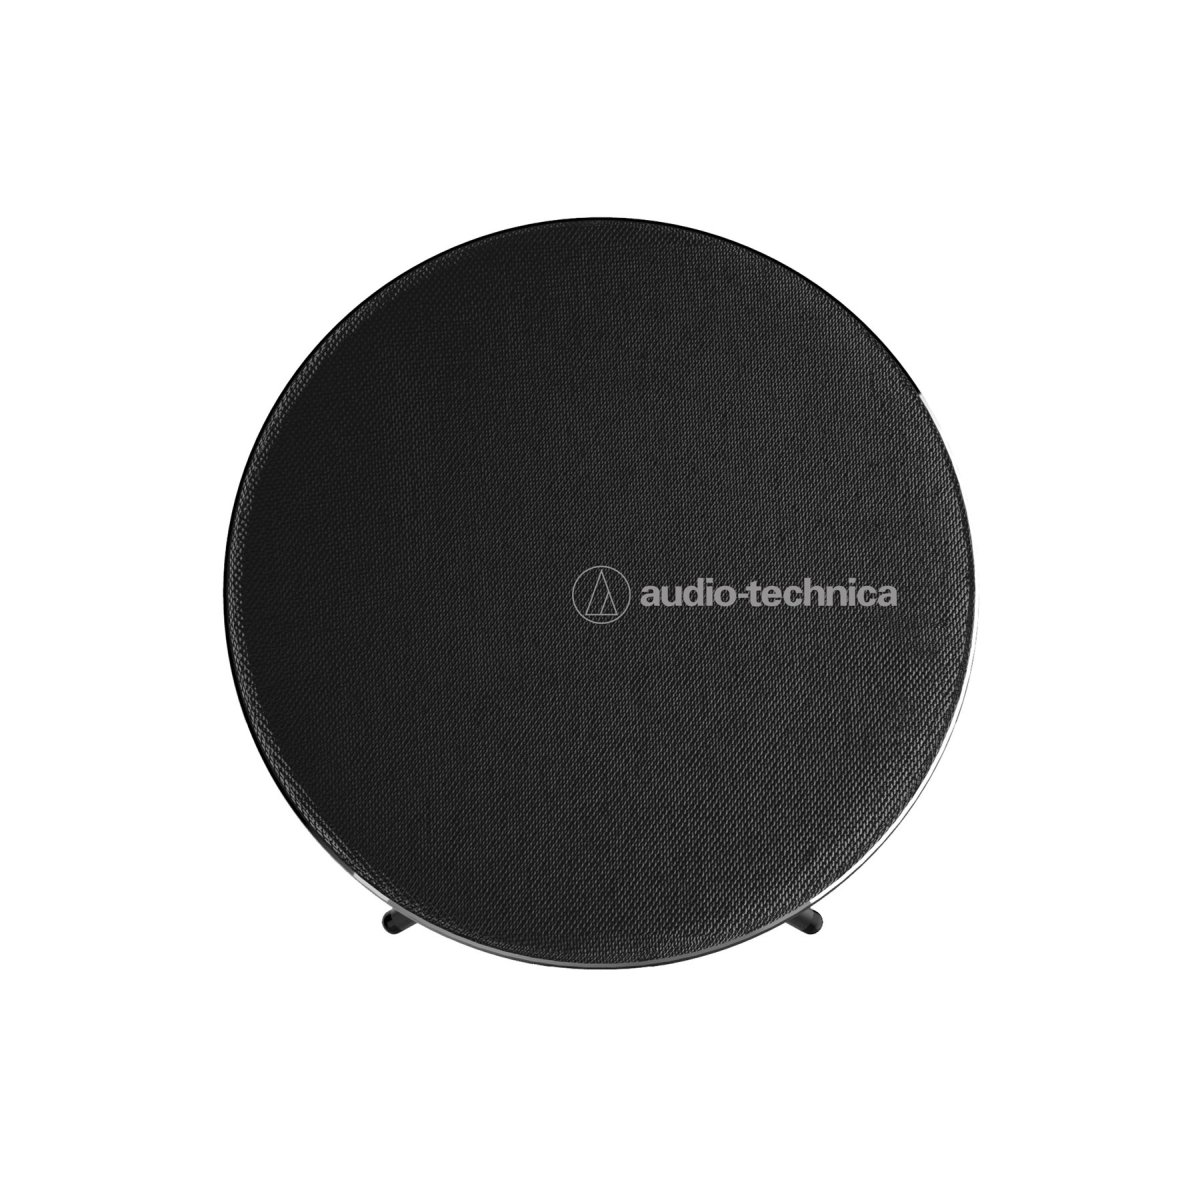 Audio-Technica AT-LP60SPBT + Bluetooth kõlar pilt 1